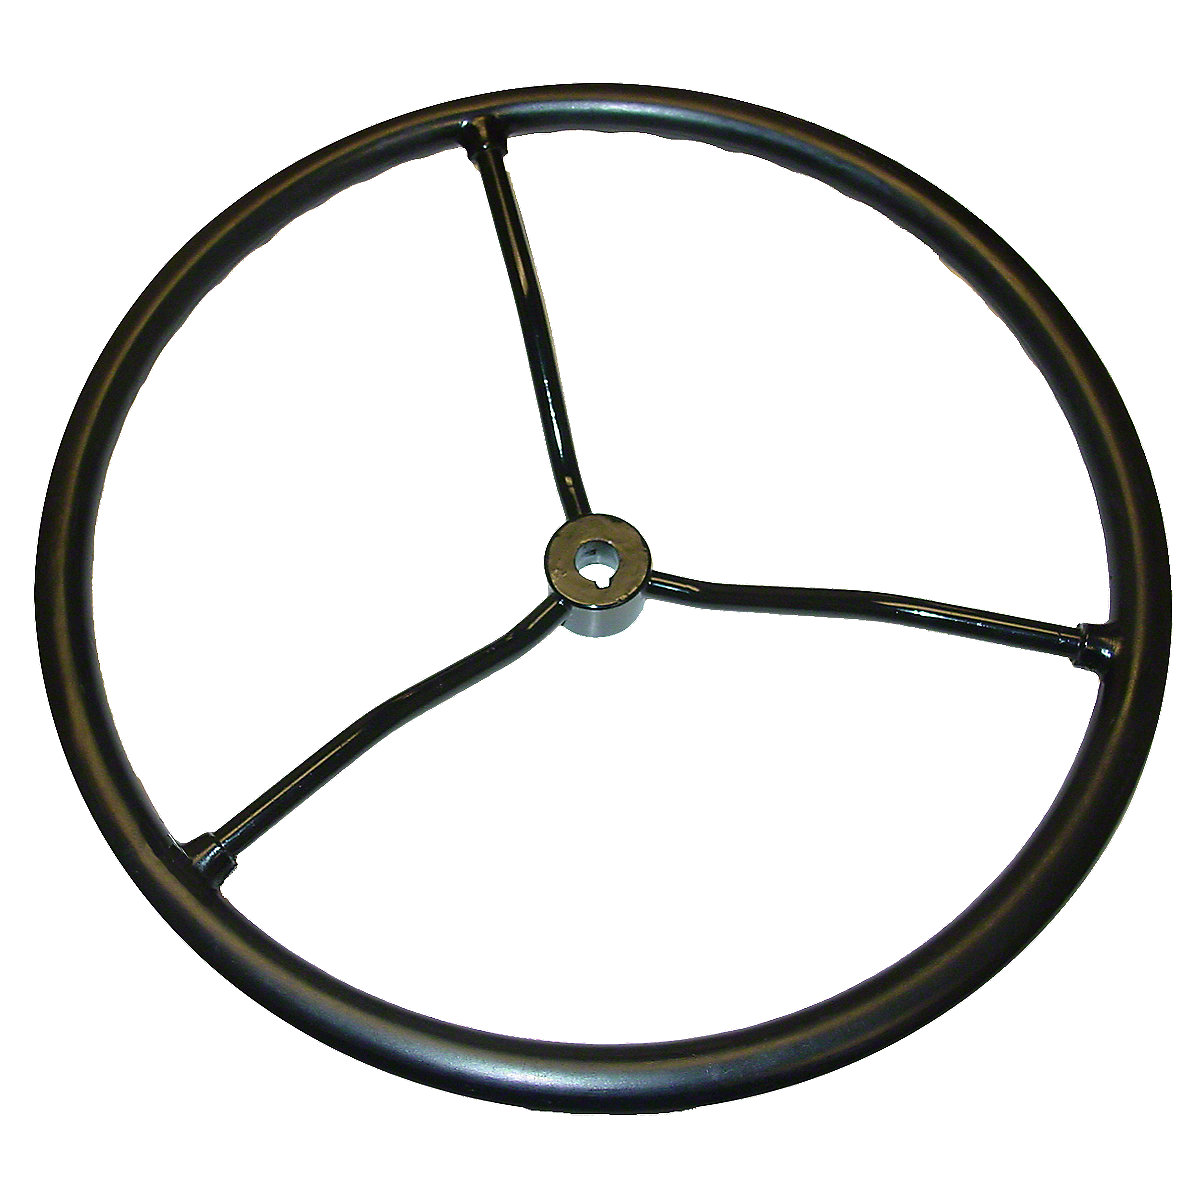 Steering Wheel For Massey Ferguson: 35, TE20, TEA20, TO20, TO30, TO35, 40, 50, 135, 135 Special, 35, 65, 85, 88, Super 90, Massey Harris: 50.